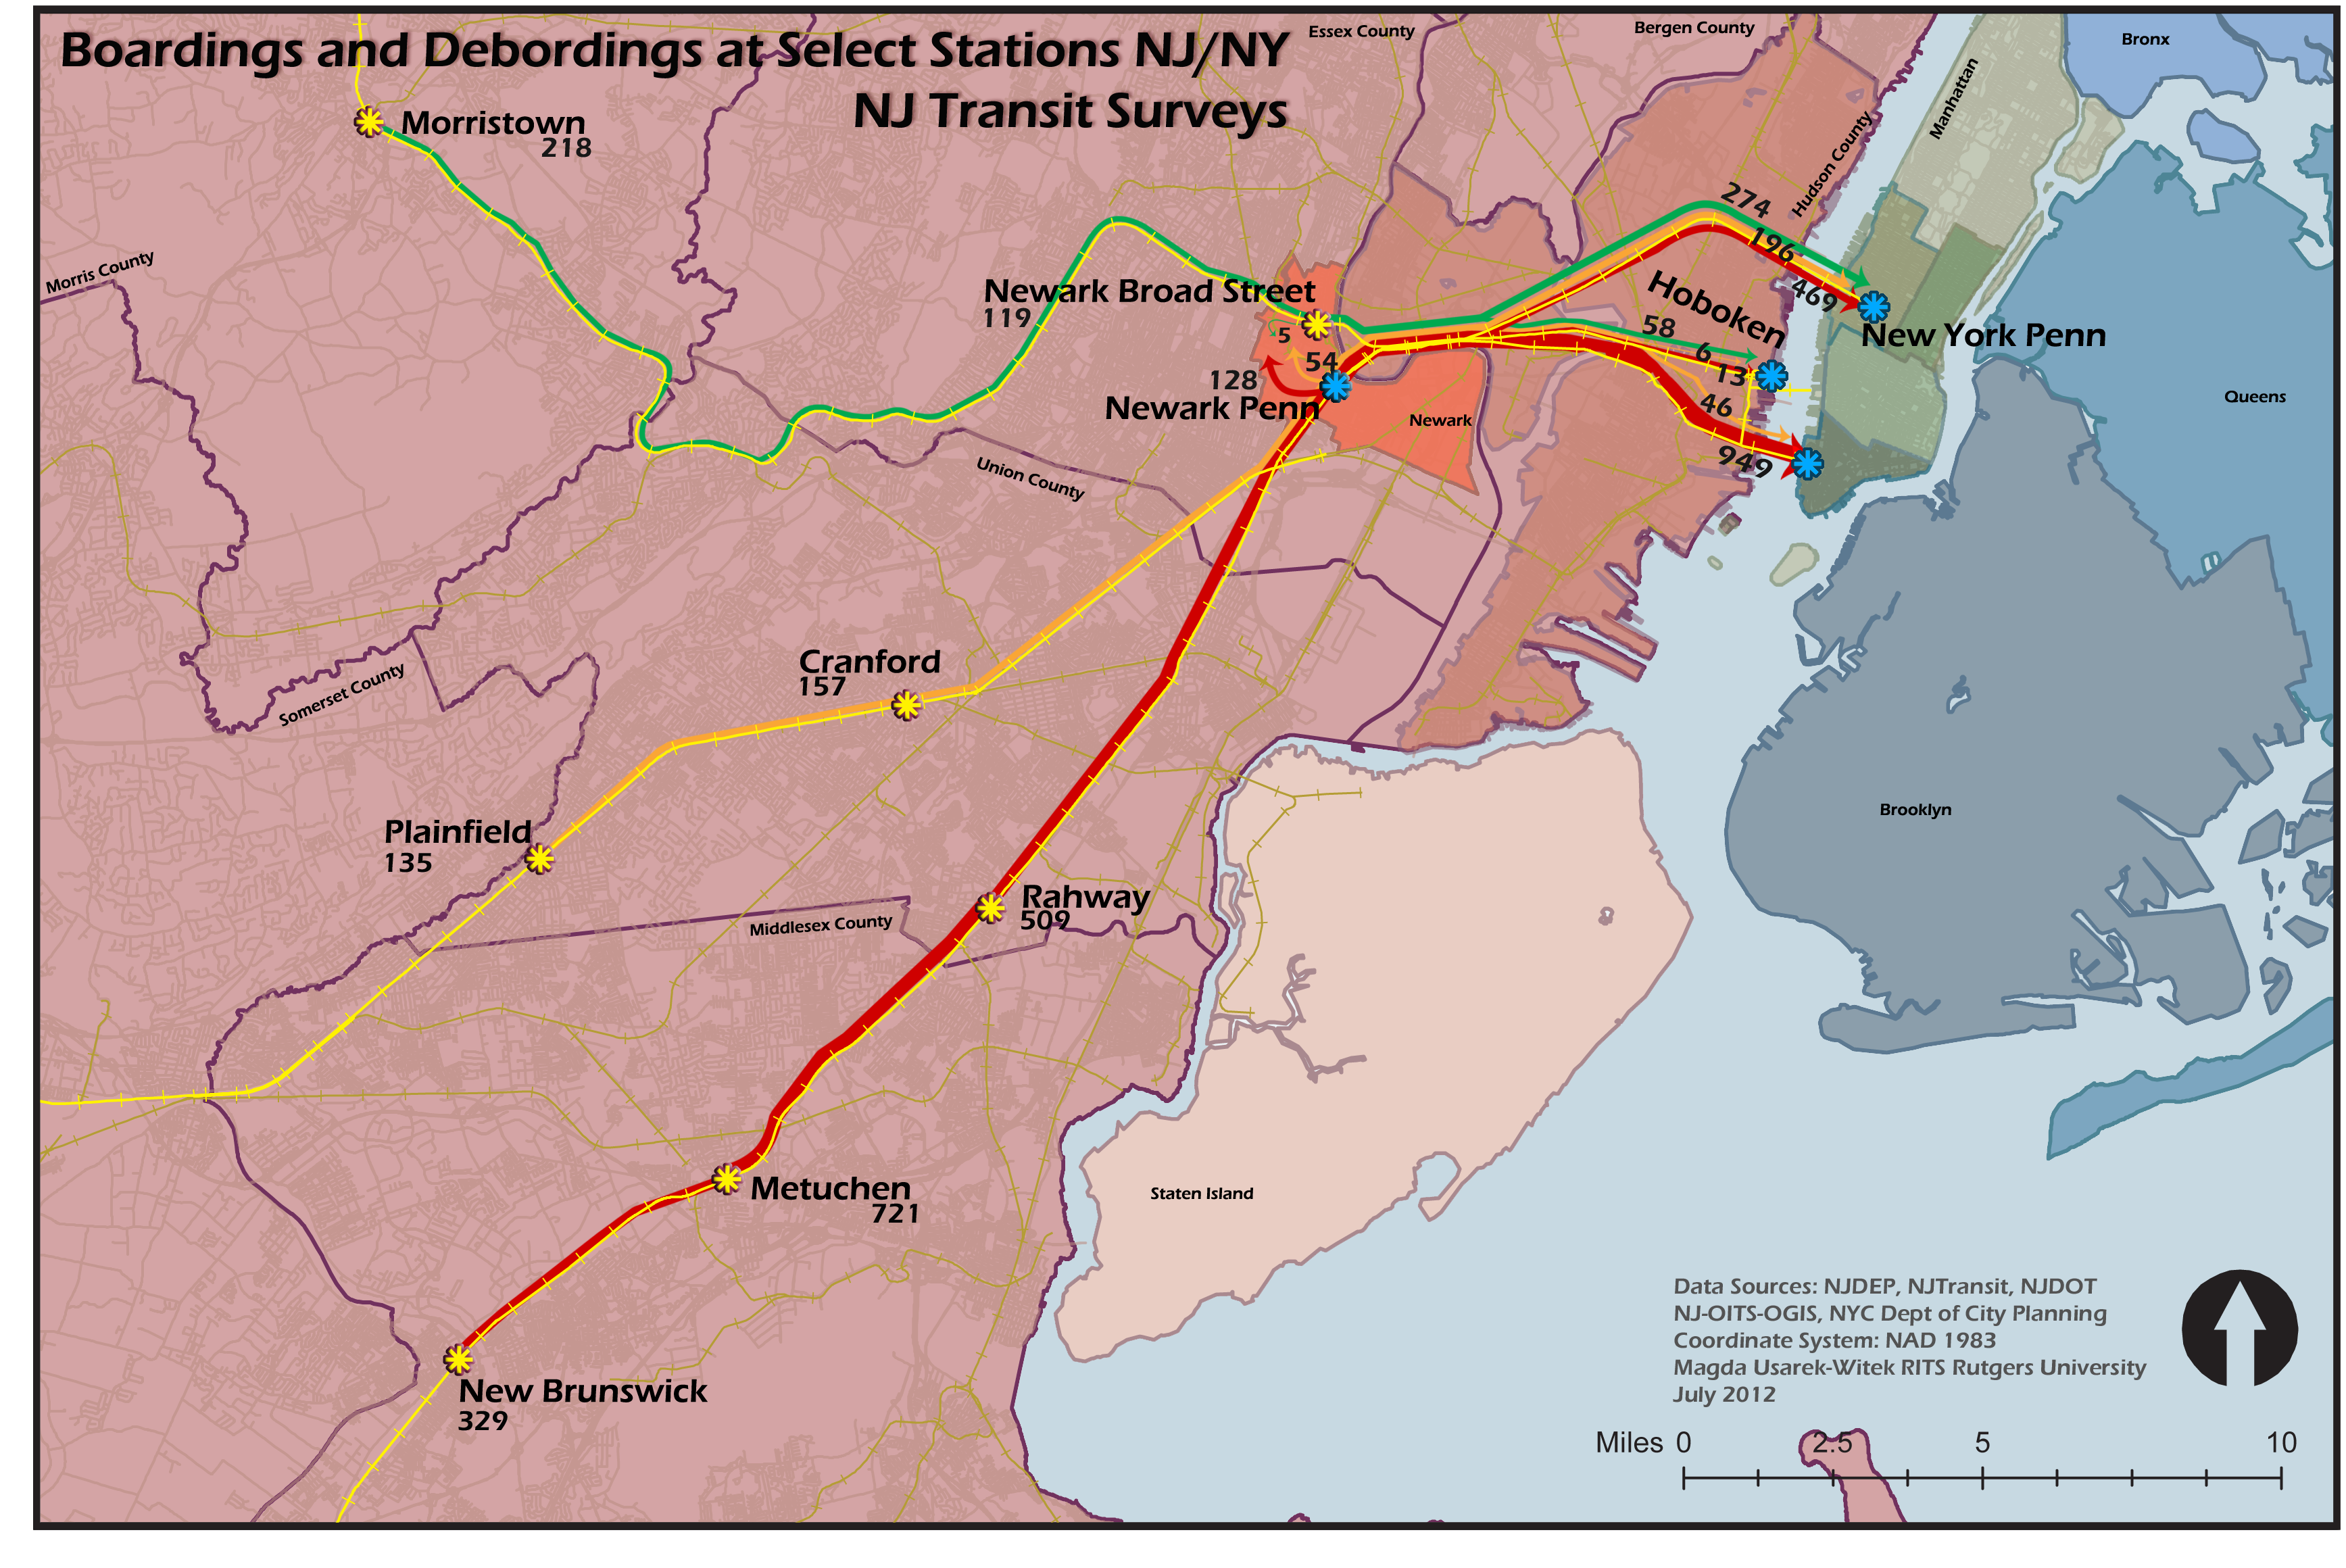 NJT Commuter Survey